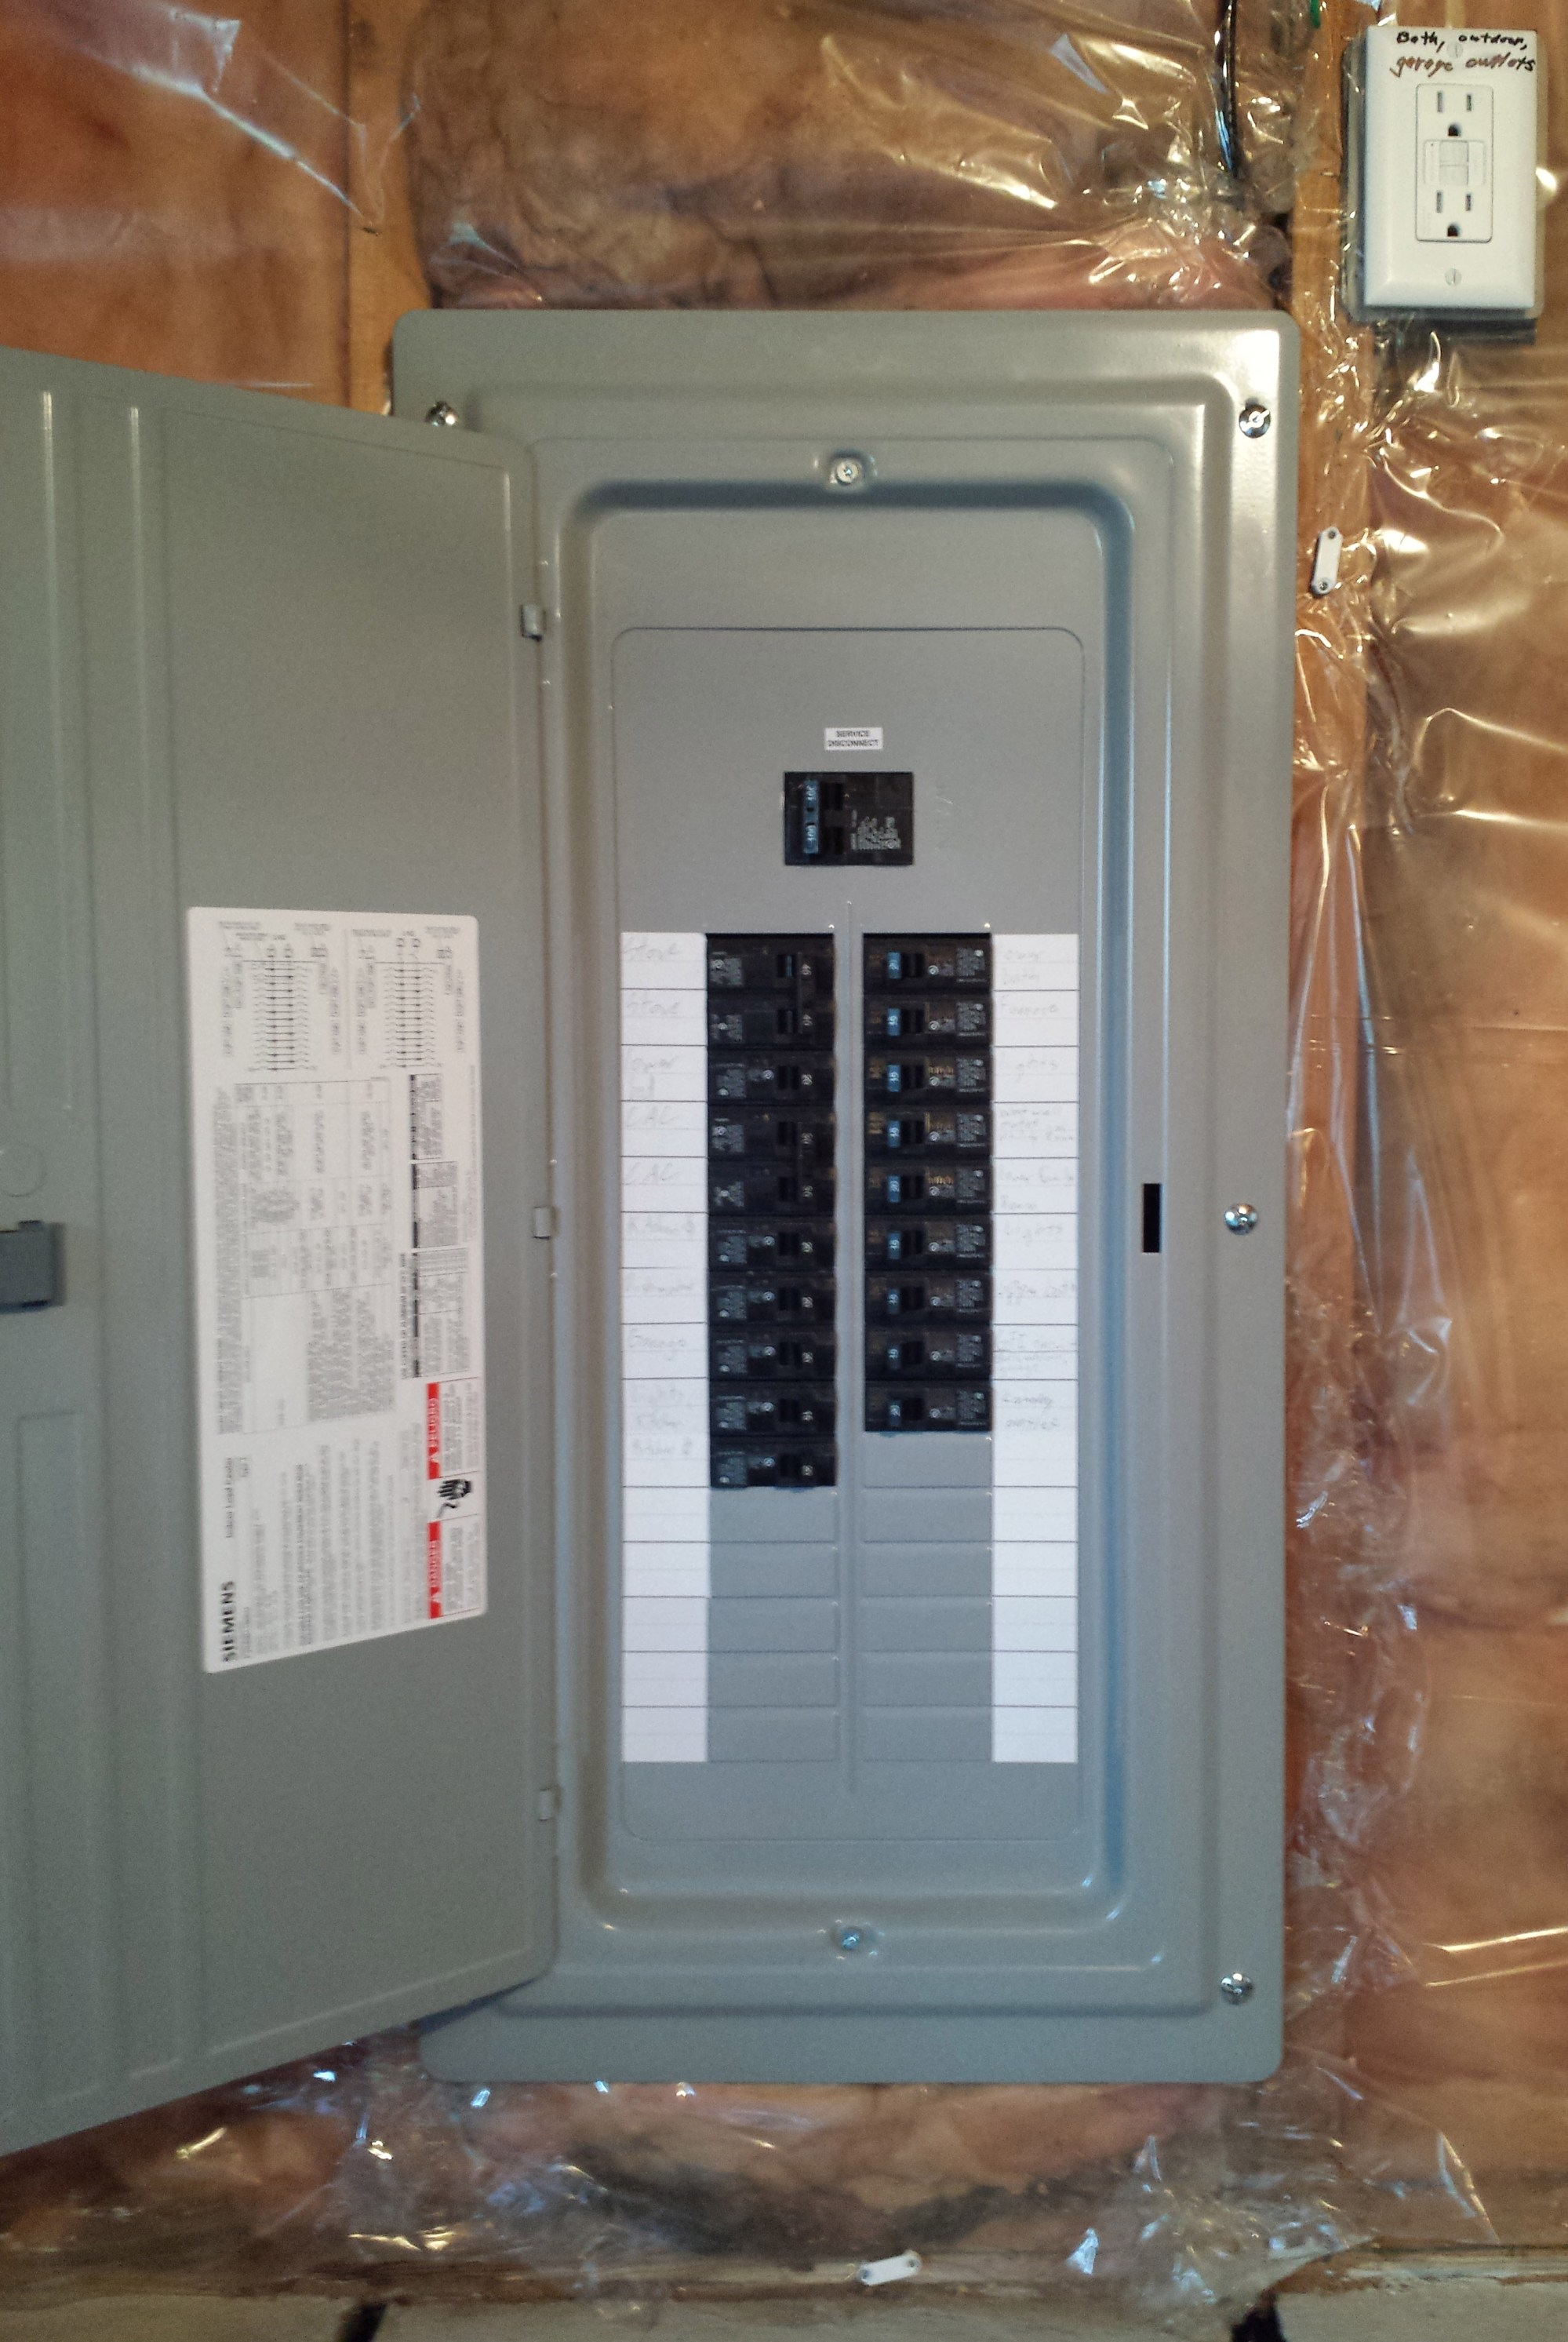 hight resolution of replace fuse box replace fpe breakers total electric 100 amp fuse box in house